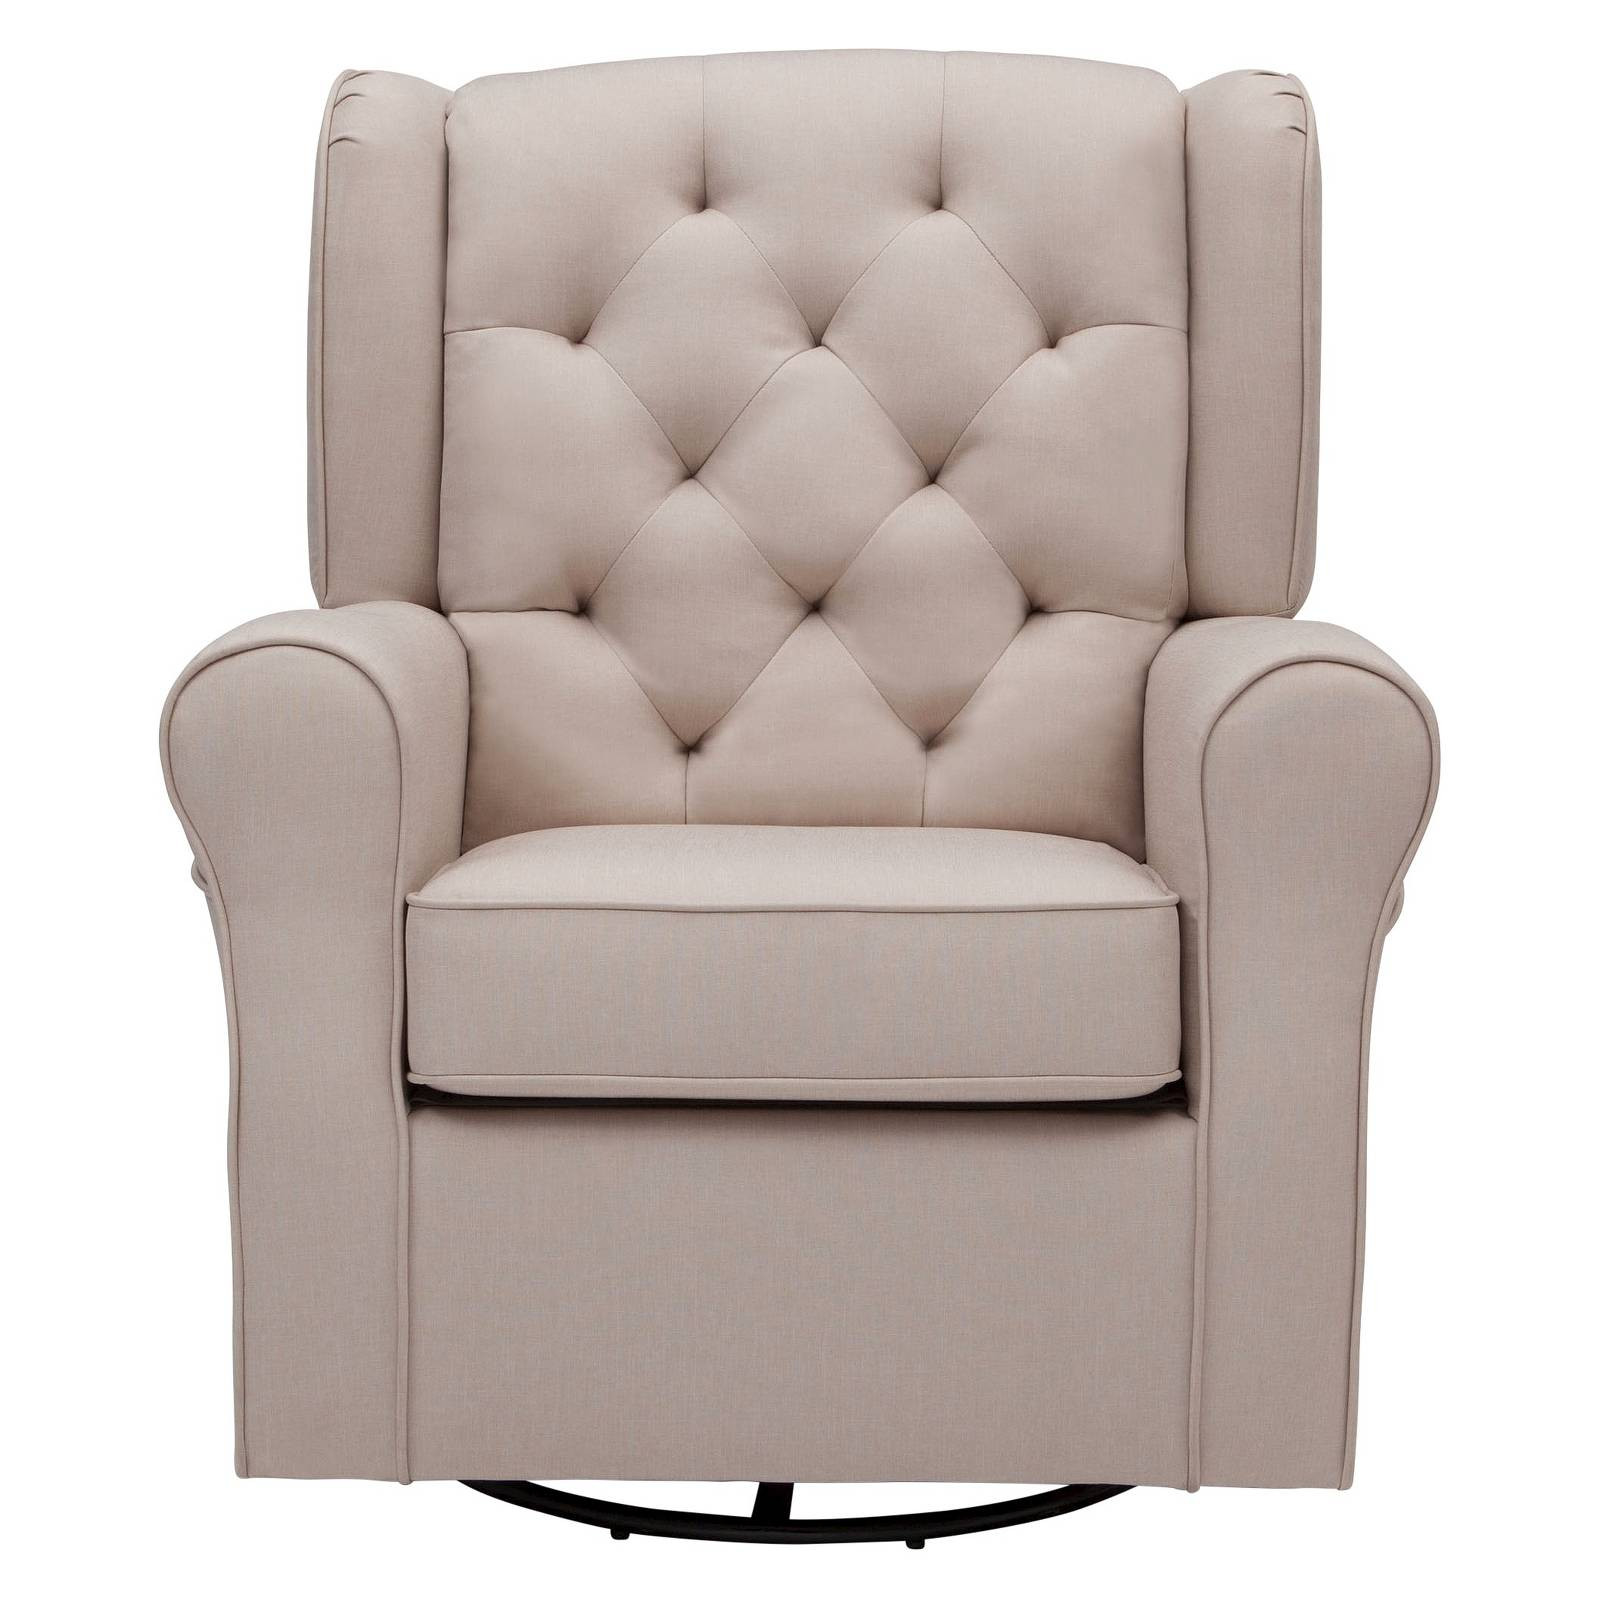 Best ideas about Swivel Glider Chair . Save or Pin Delta Children Emma Nursery Glider Swivel Rocker Chair Now.